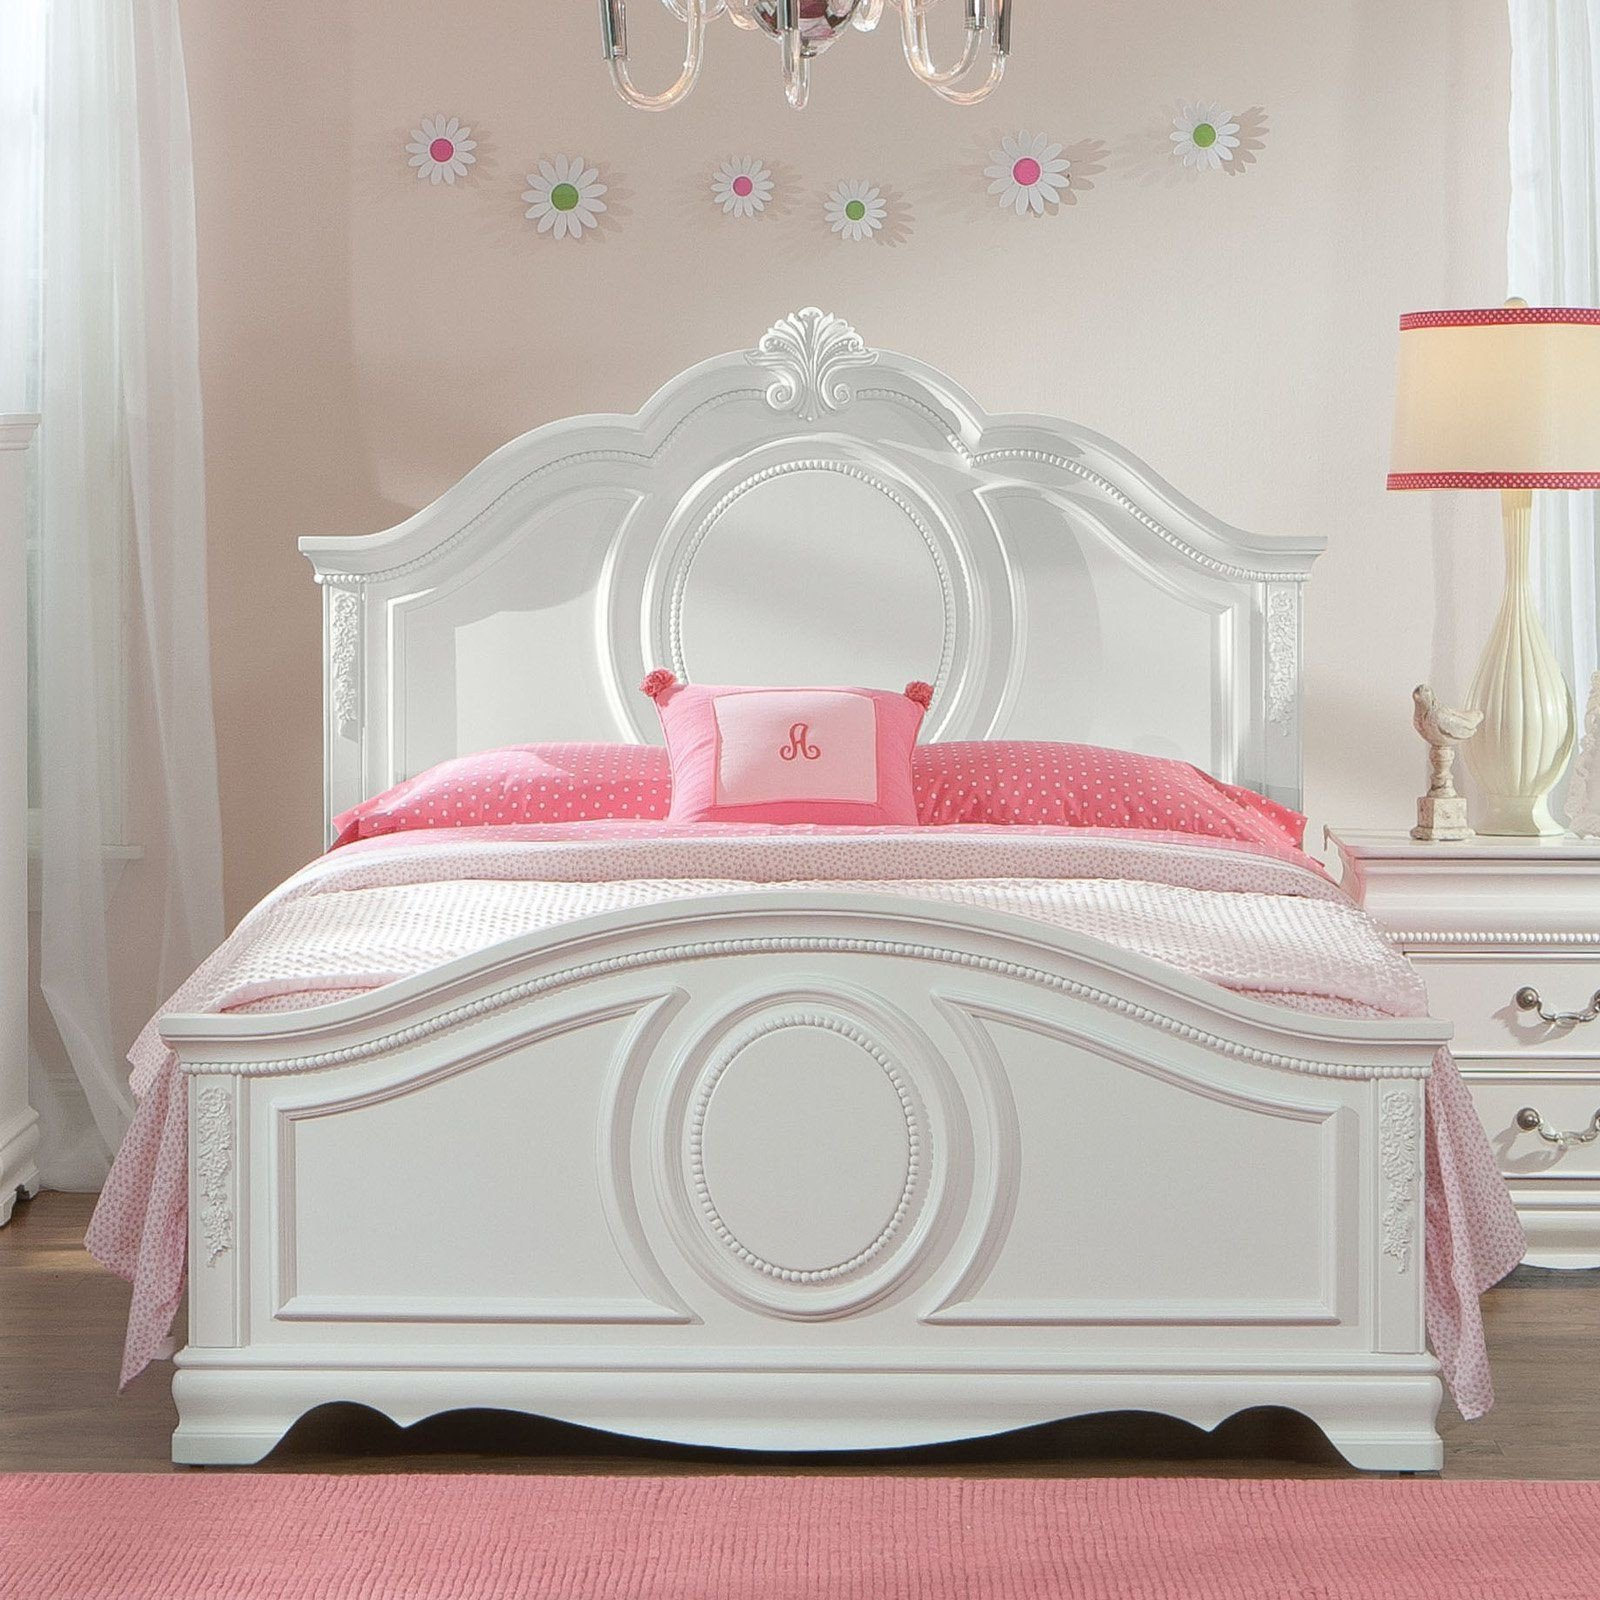 Bedroom Set for Girls New Standard Furniture Jessica Panel Bed White Stfm706